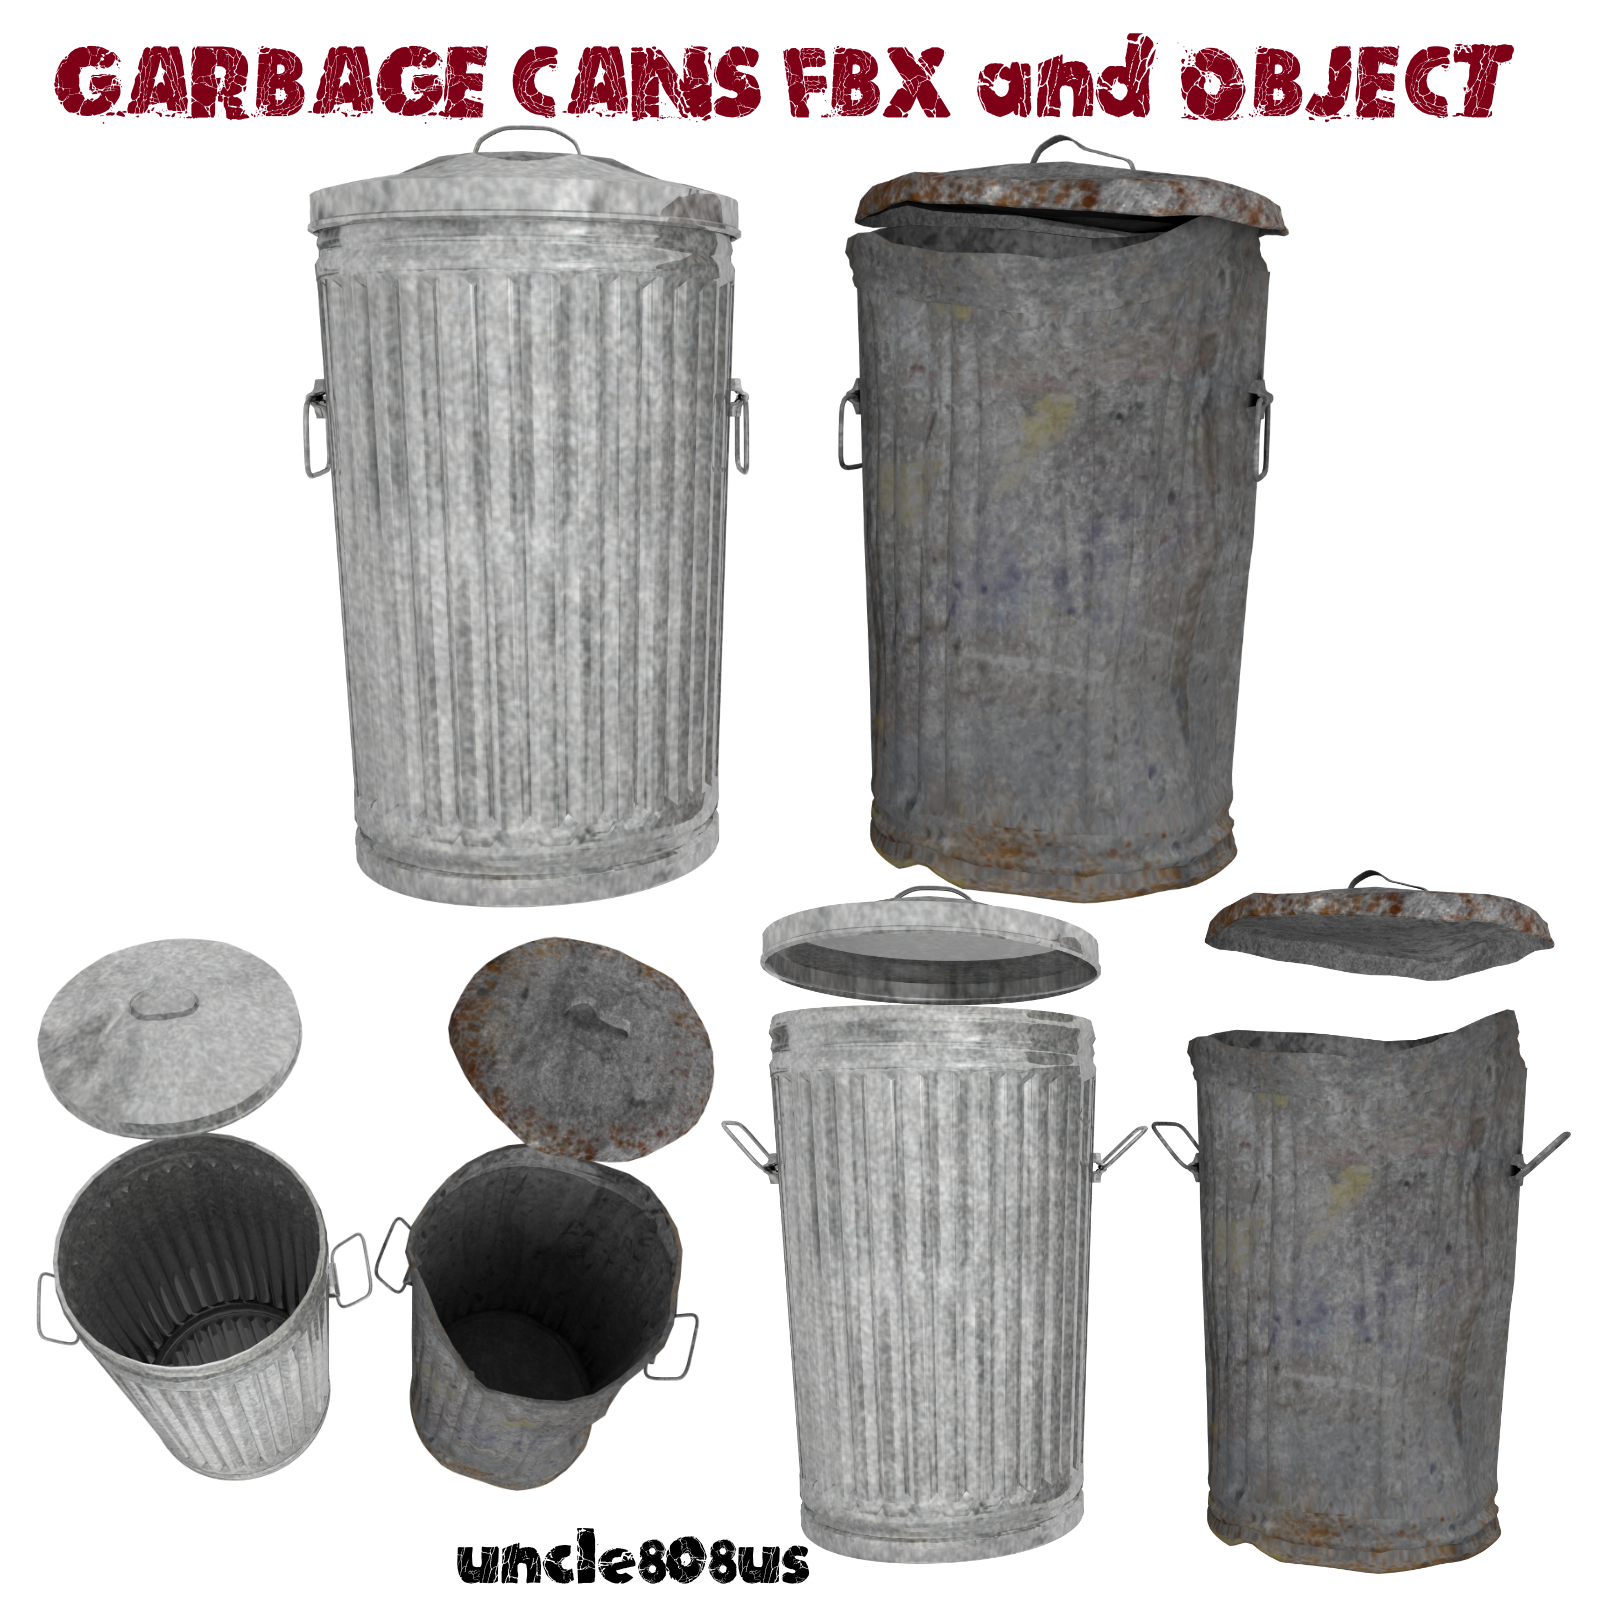 Garbage Cans fbx and Object - Extended License